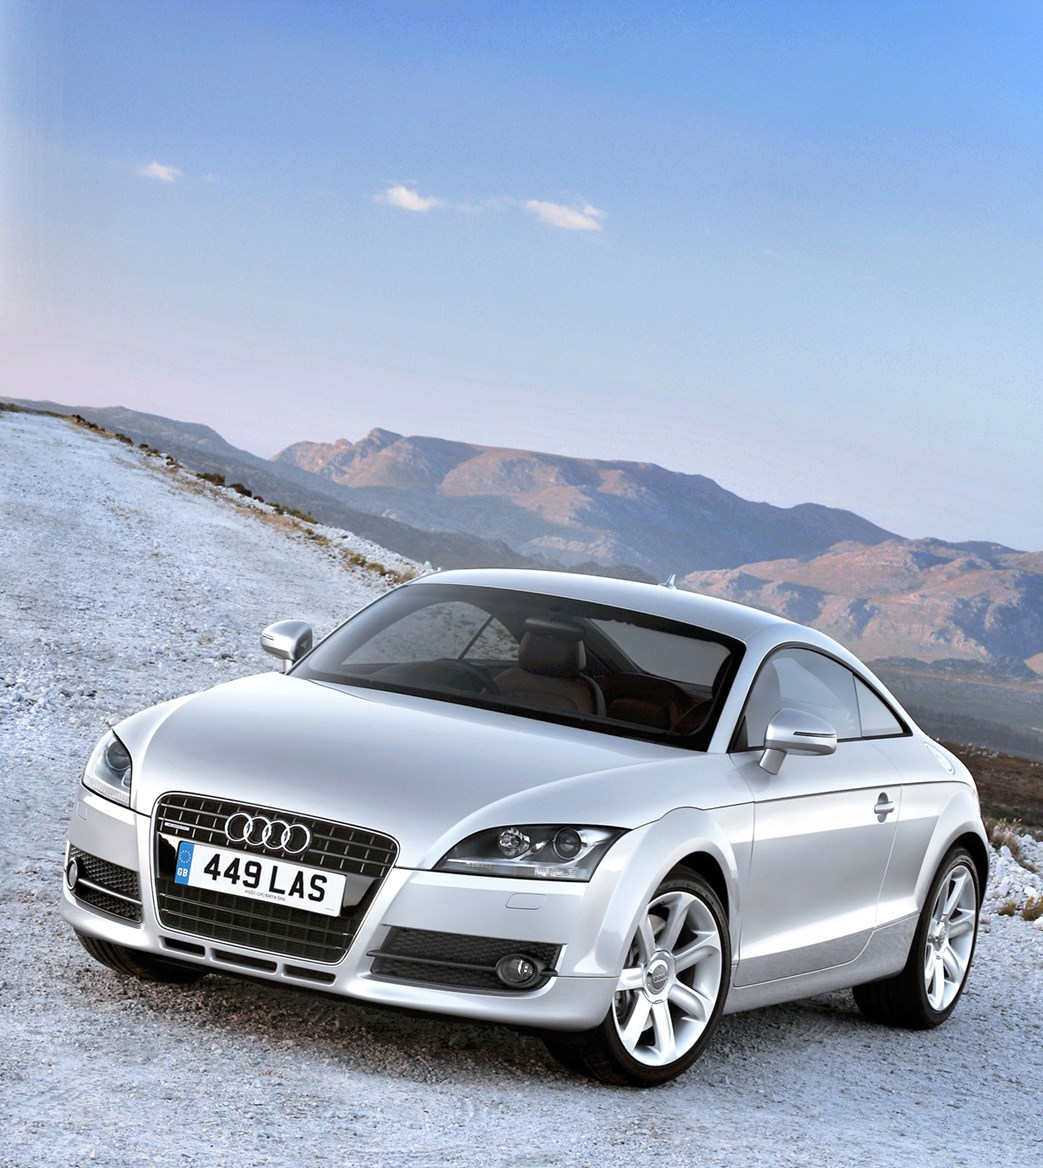 Audi TT Coupé (2006 - 2014) Photos